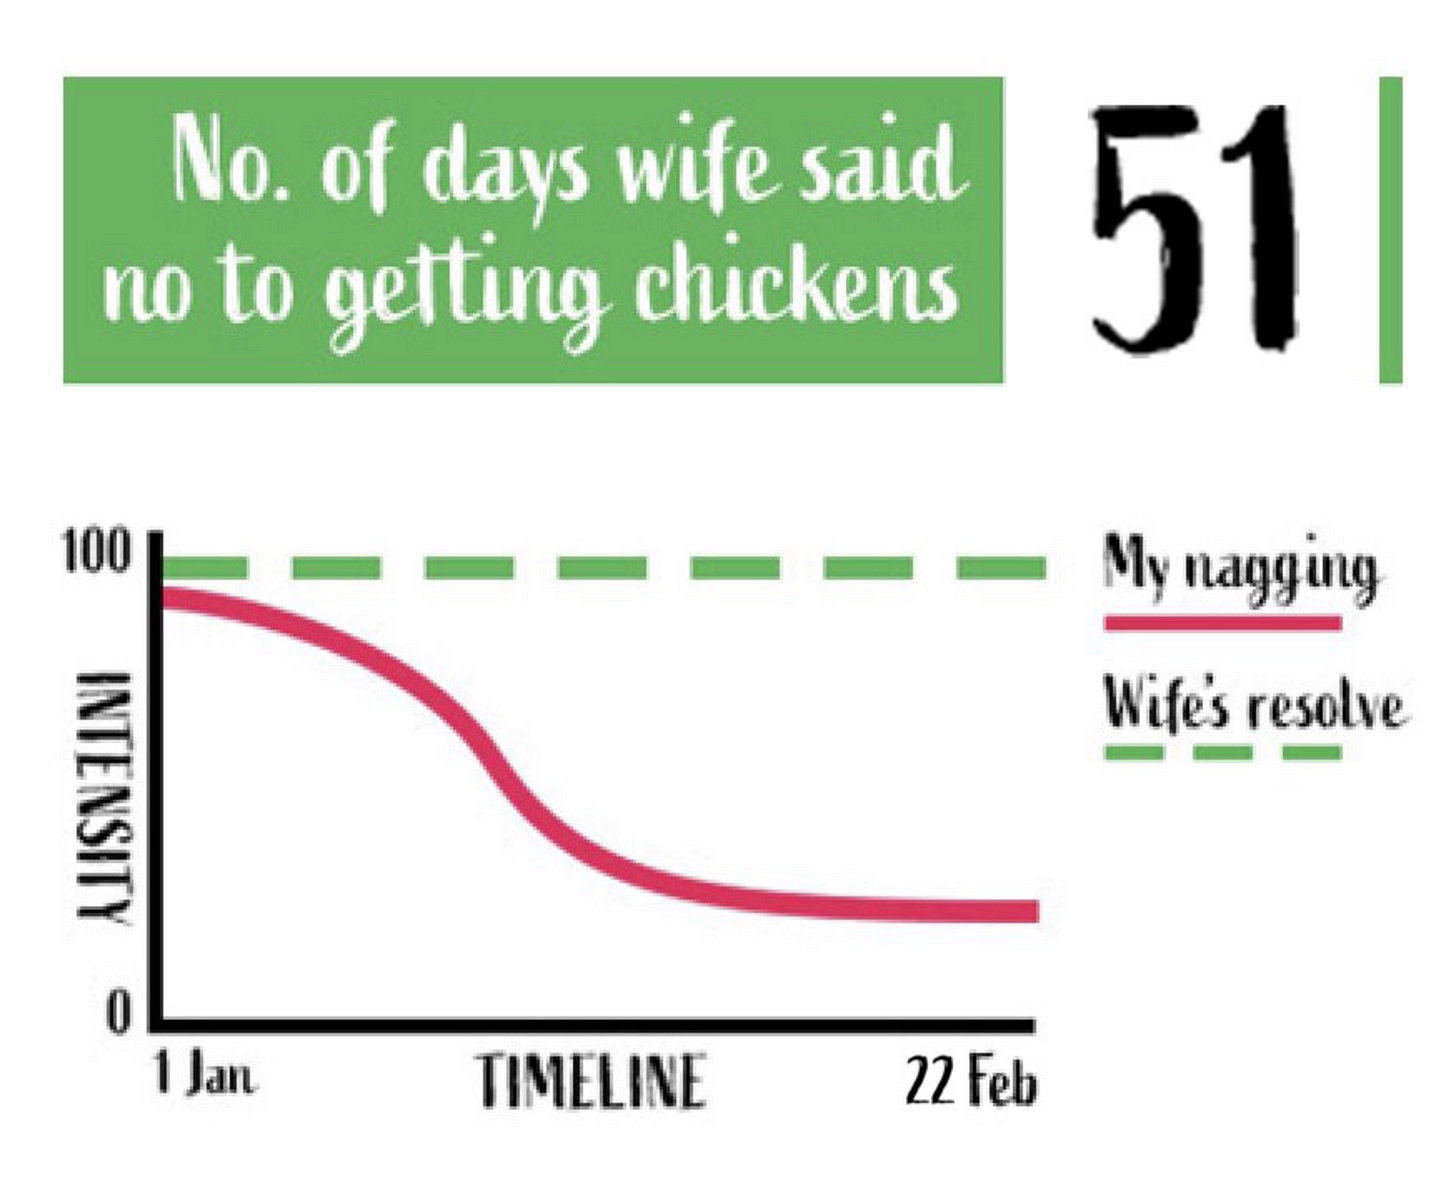 graph showing number of days my wife's said no to getting chickens.